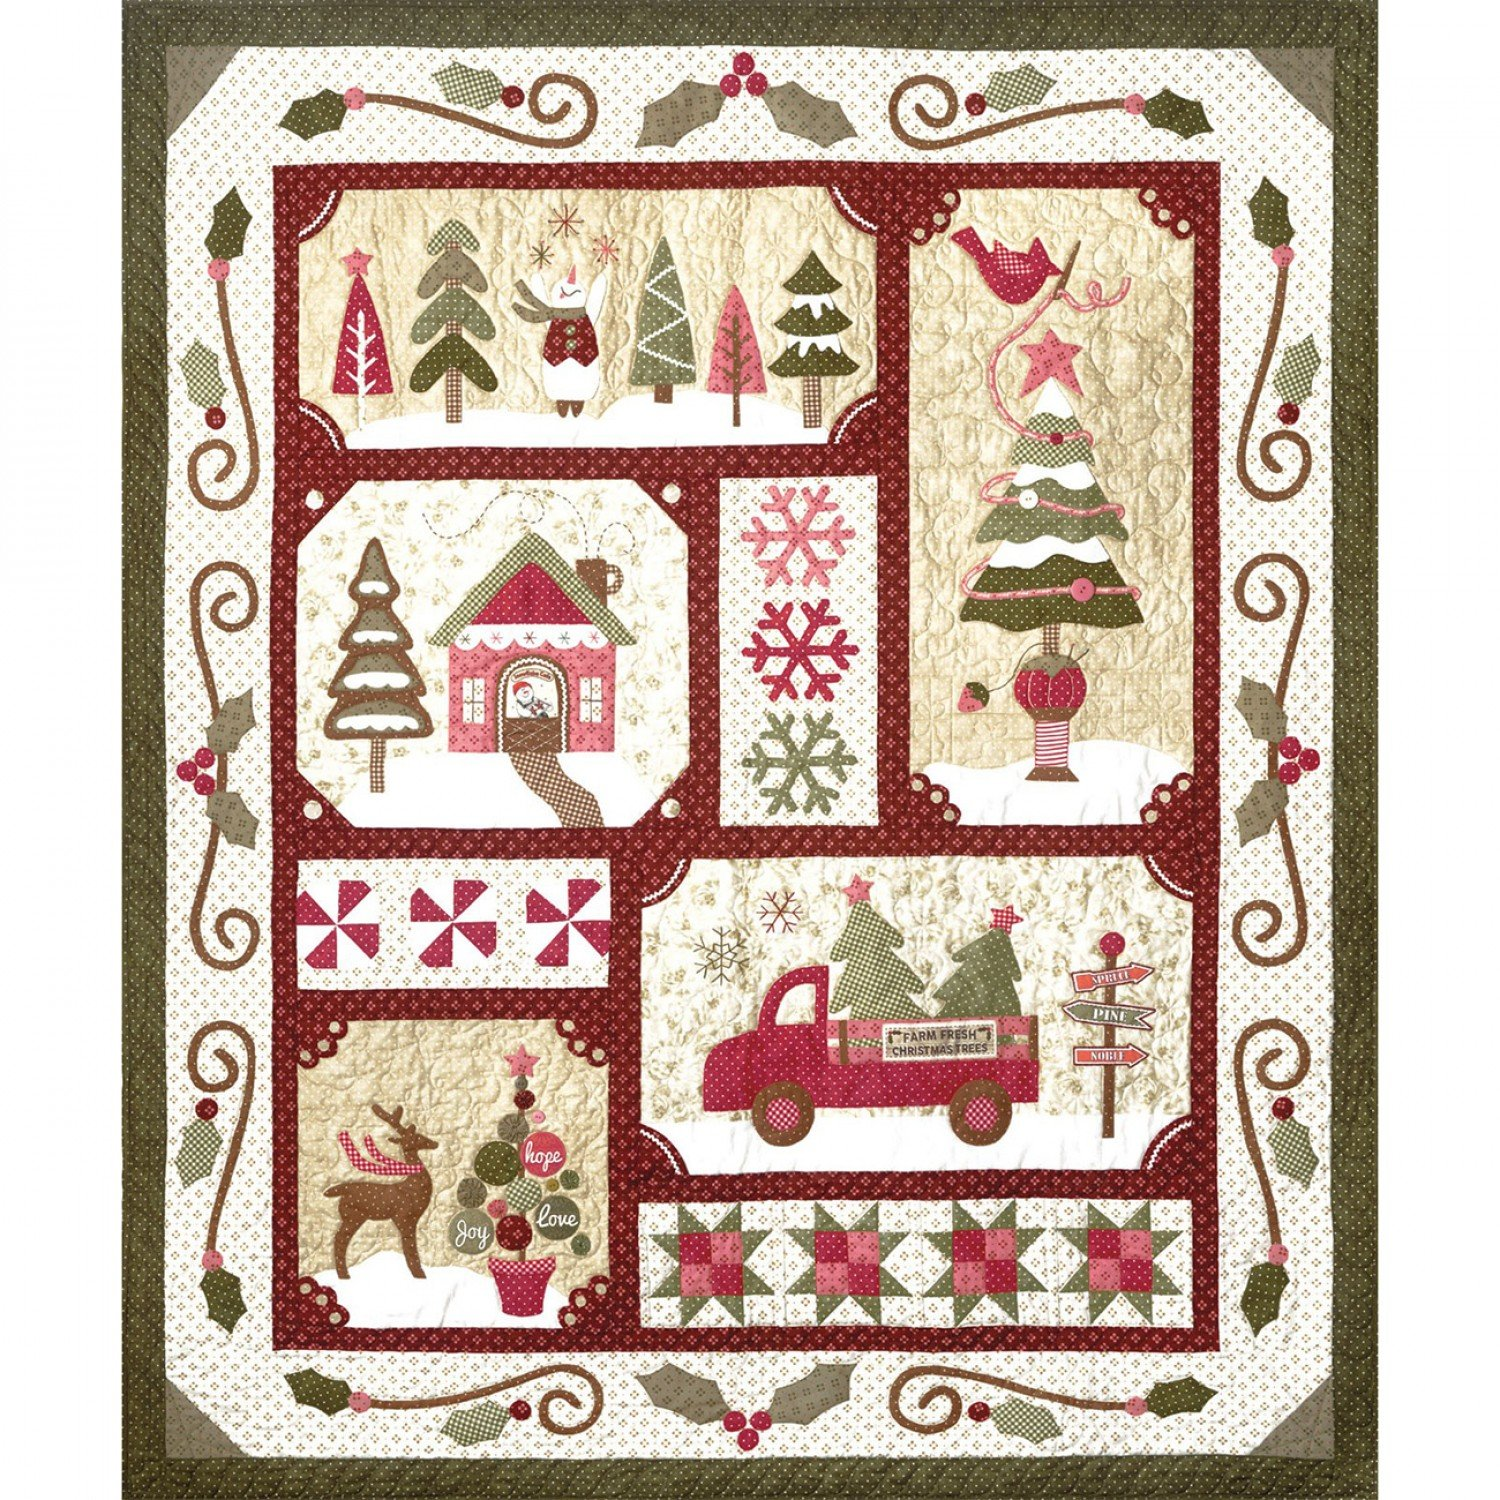 Sew Merry Quilt Pattern Set with Accessory Fabric Packet & Buttons